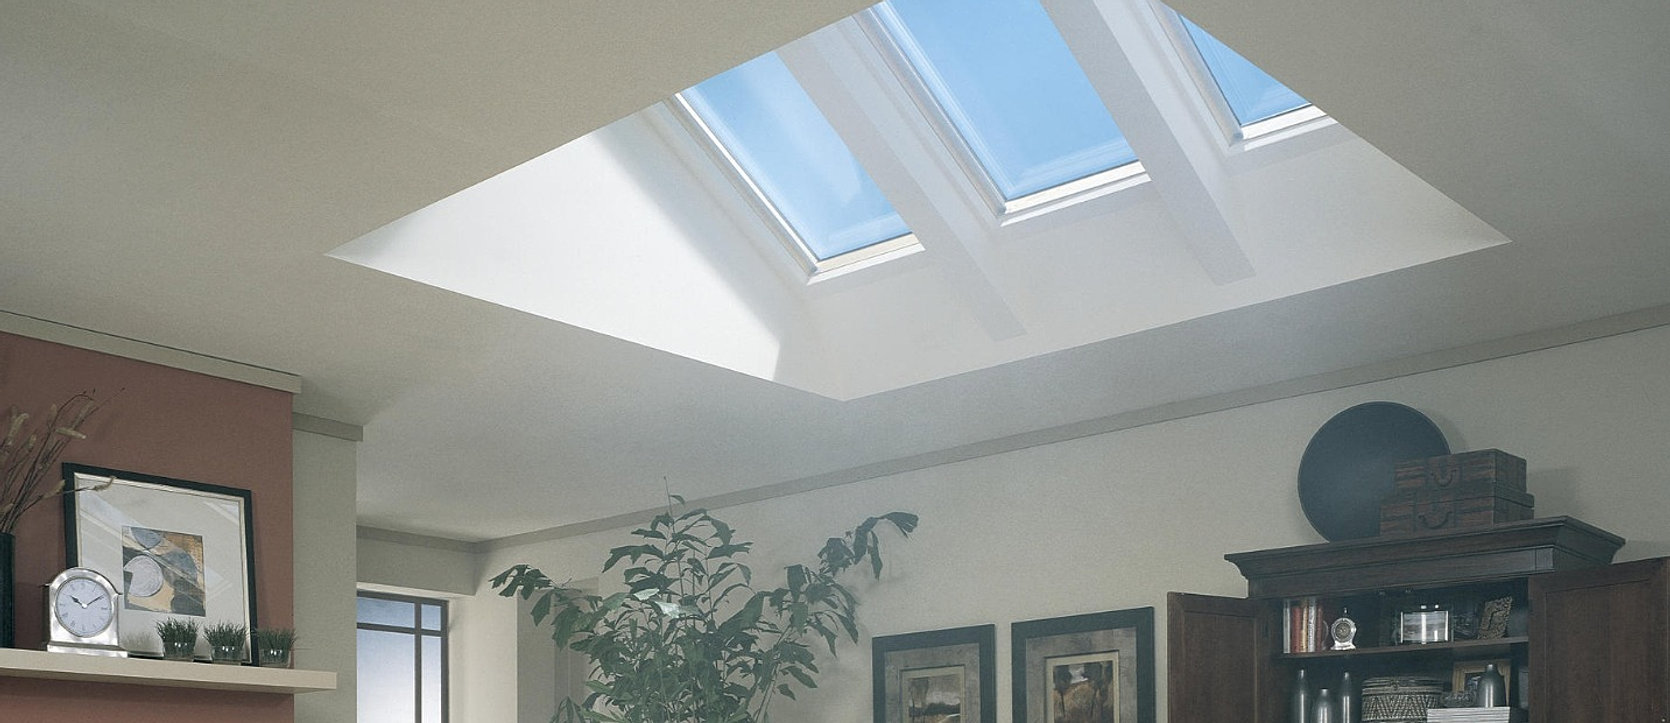 Simply Skylights